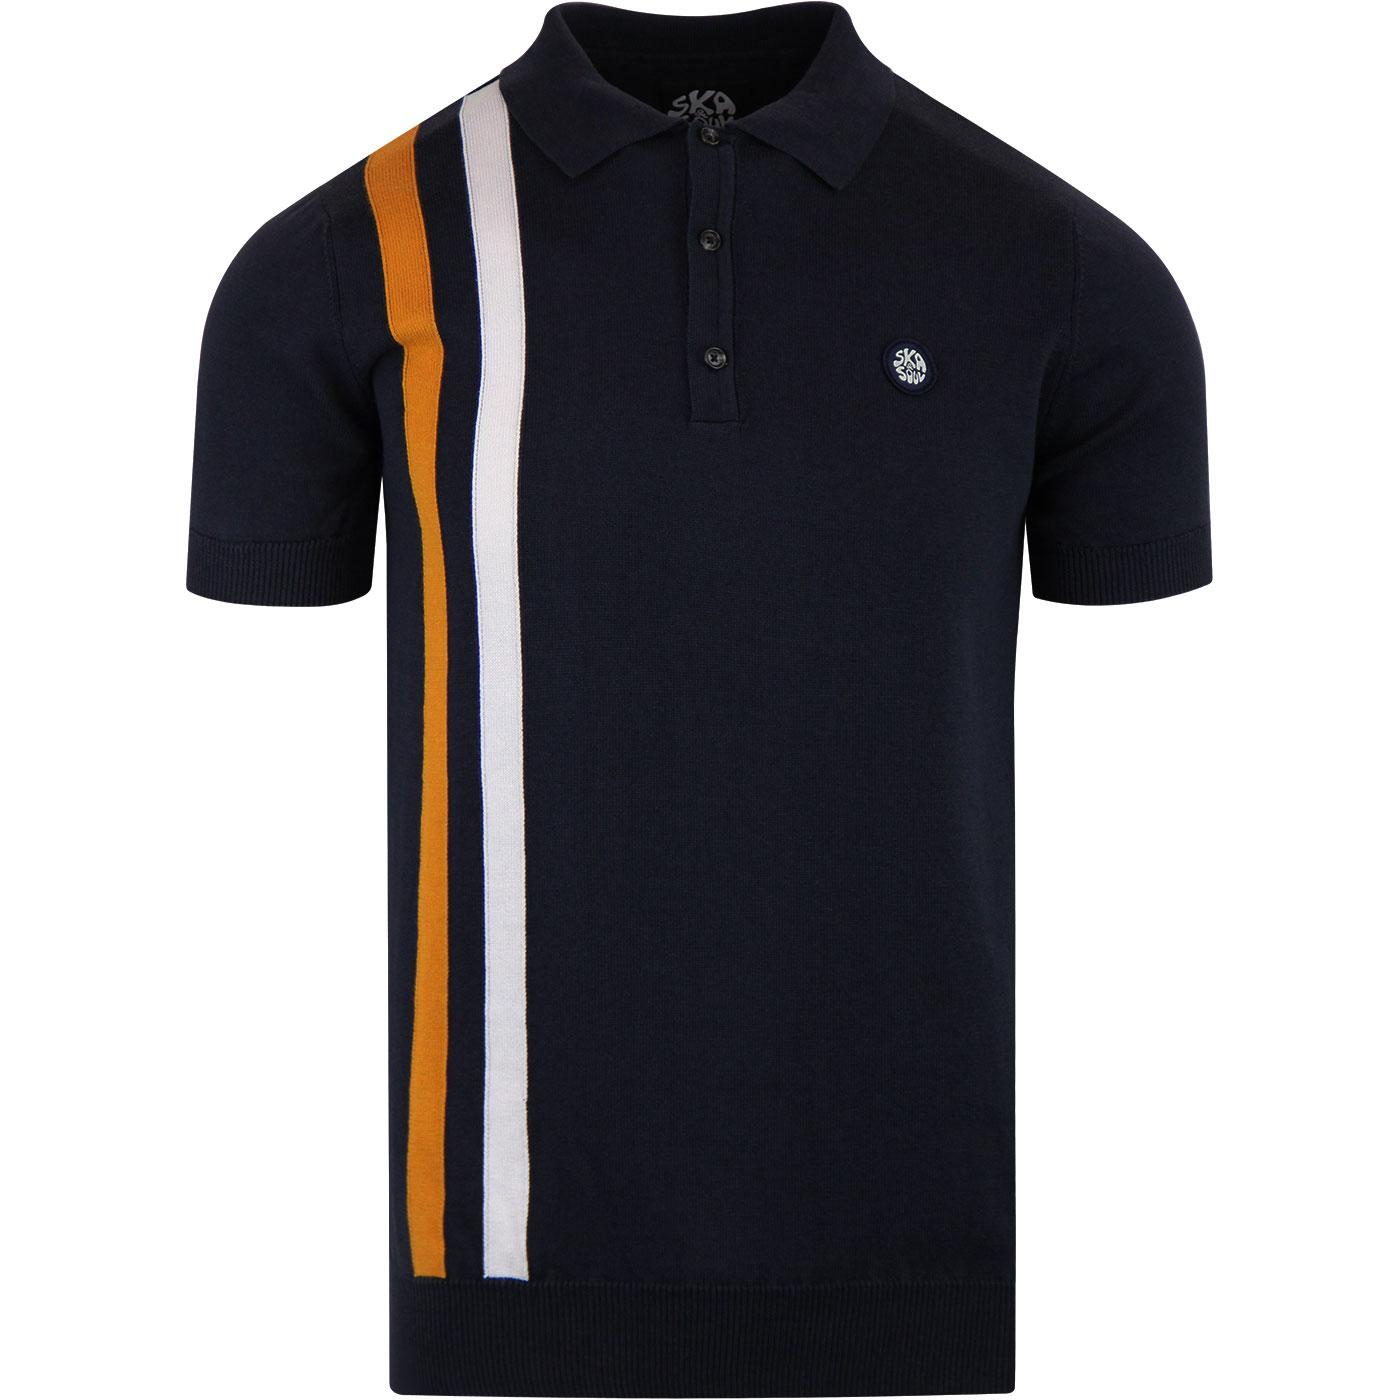 SKA & SOUL Racing Stripe Mod Knitted Polo Navy